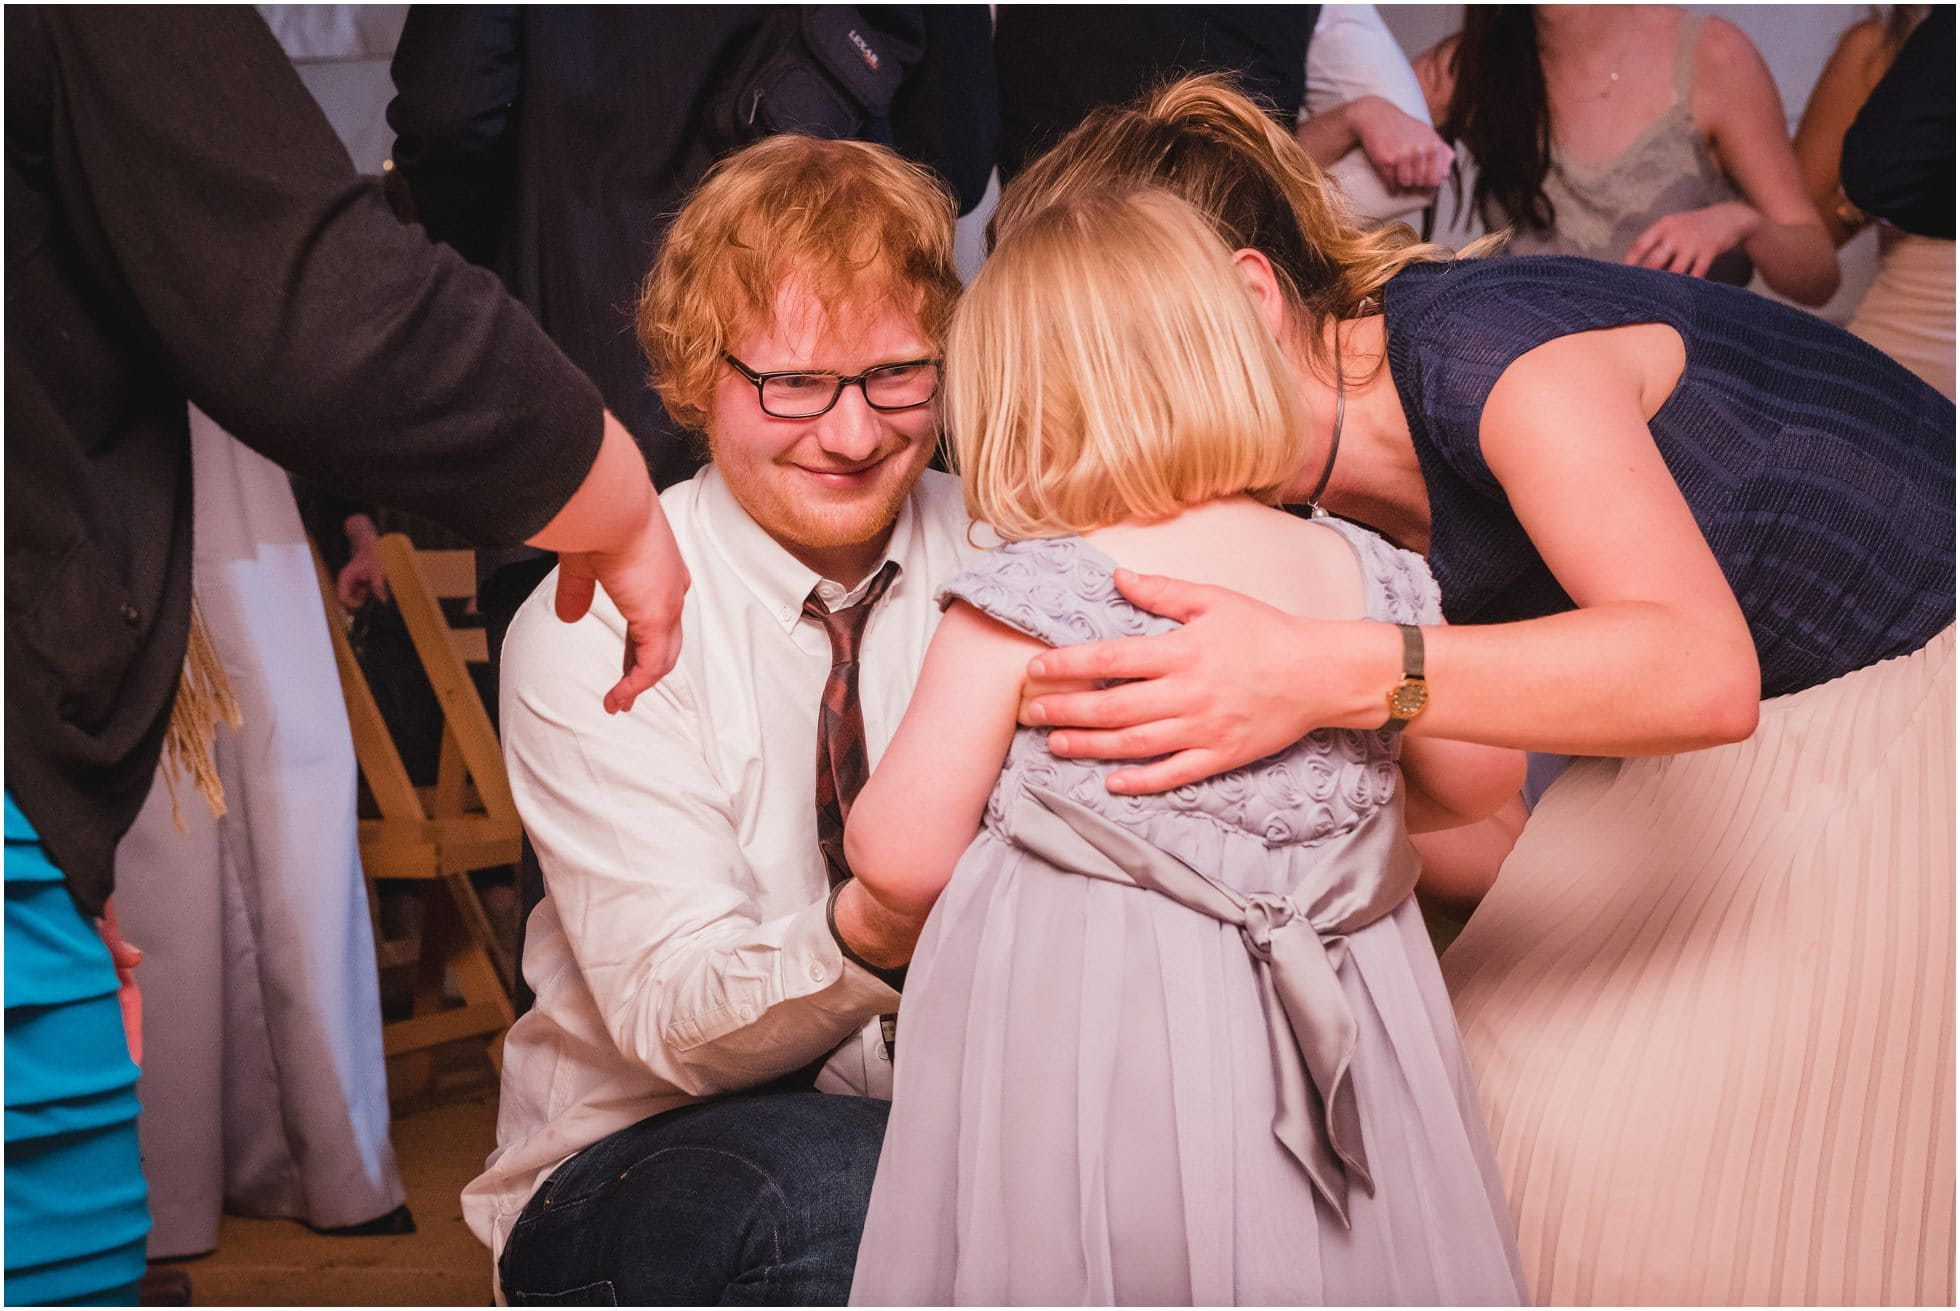 Ed Sheeran meets the youngest bridesmaid